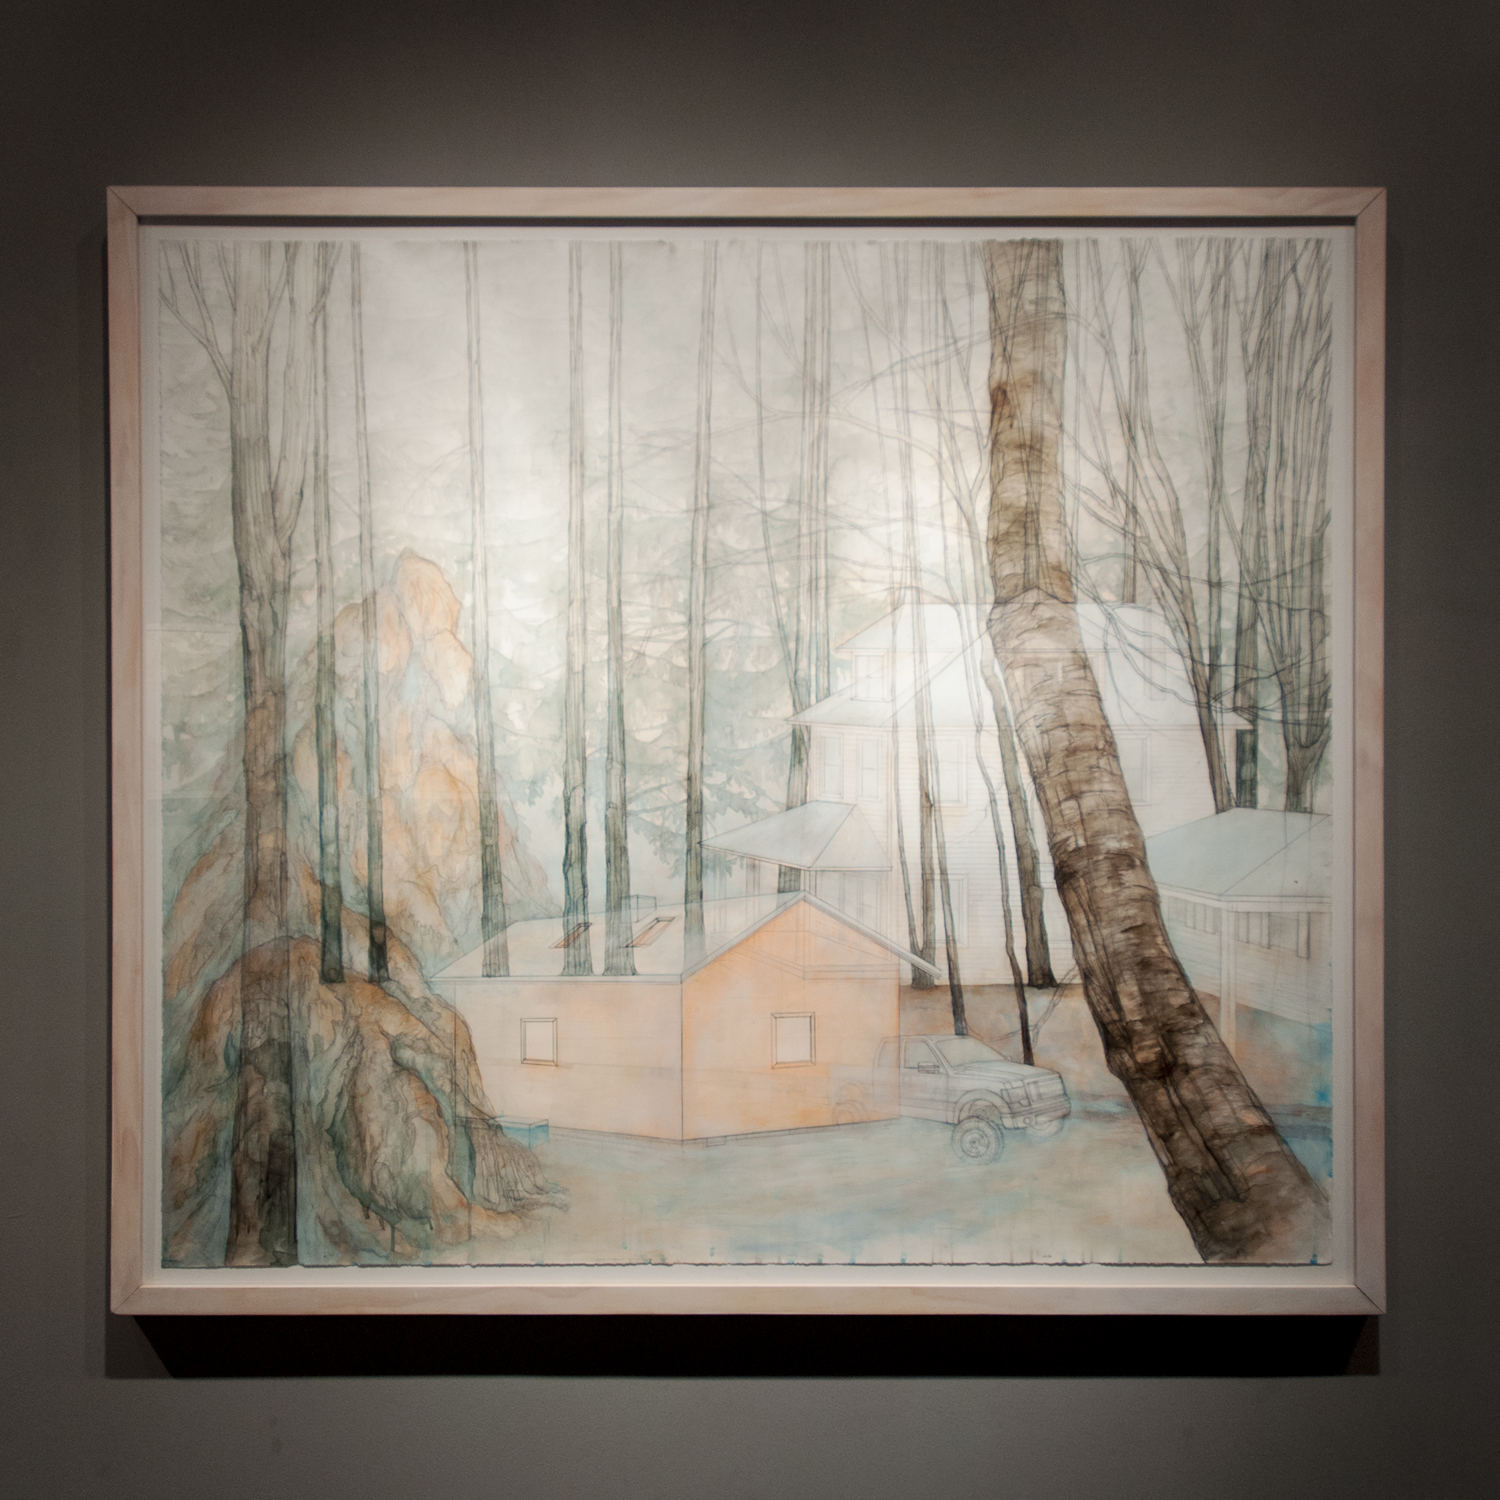 Carly Drew,Contested Grounds, watercolor, graphite, acrylic, pastel on paper, 60 by 60 inches